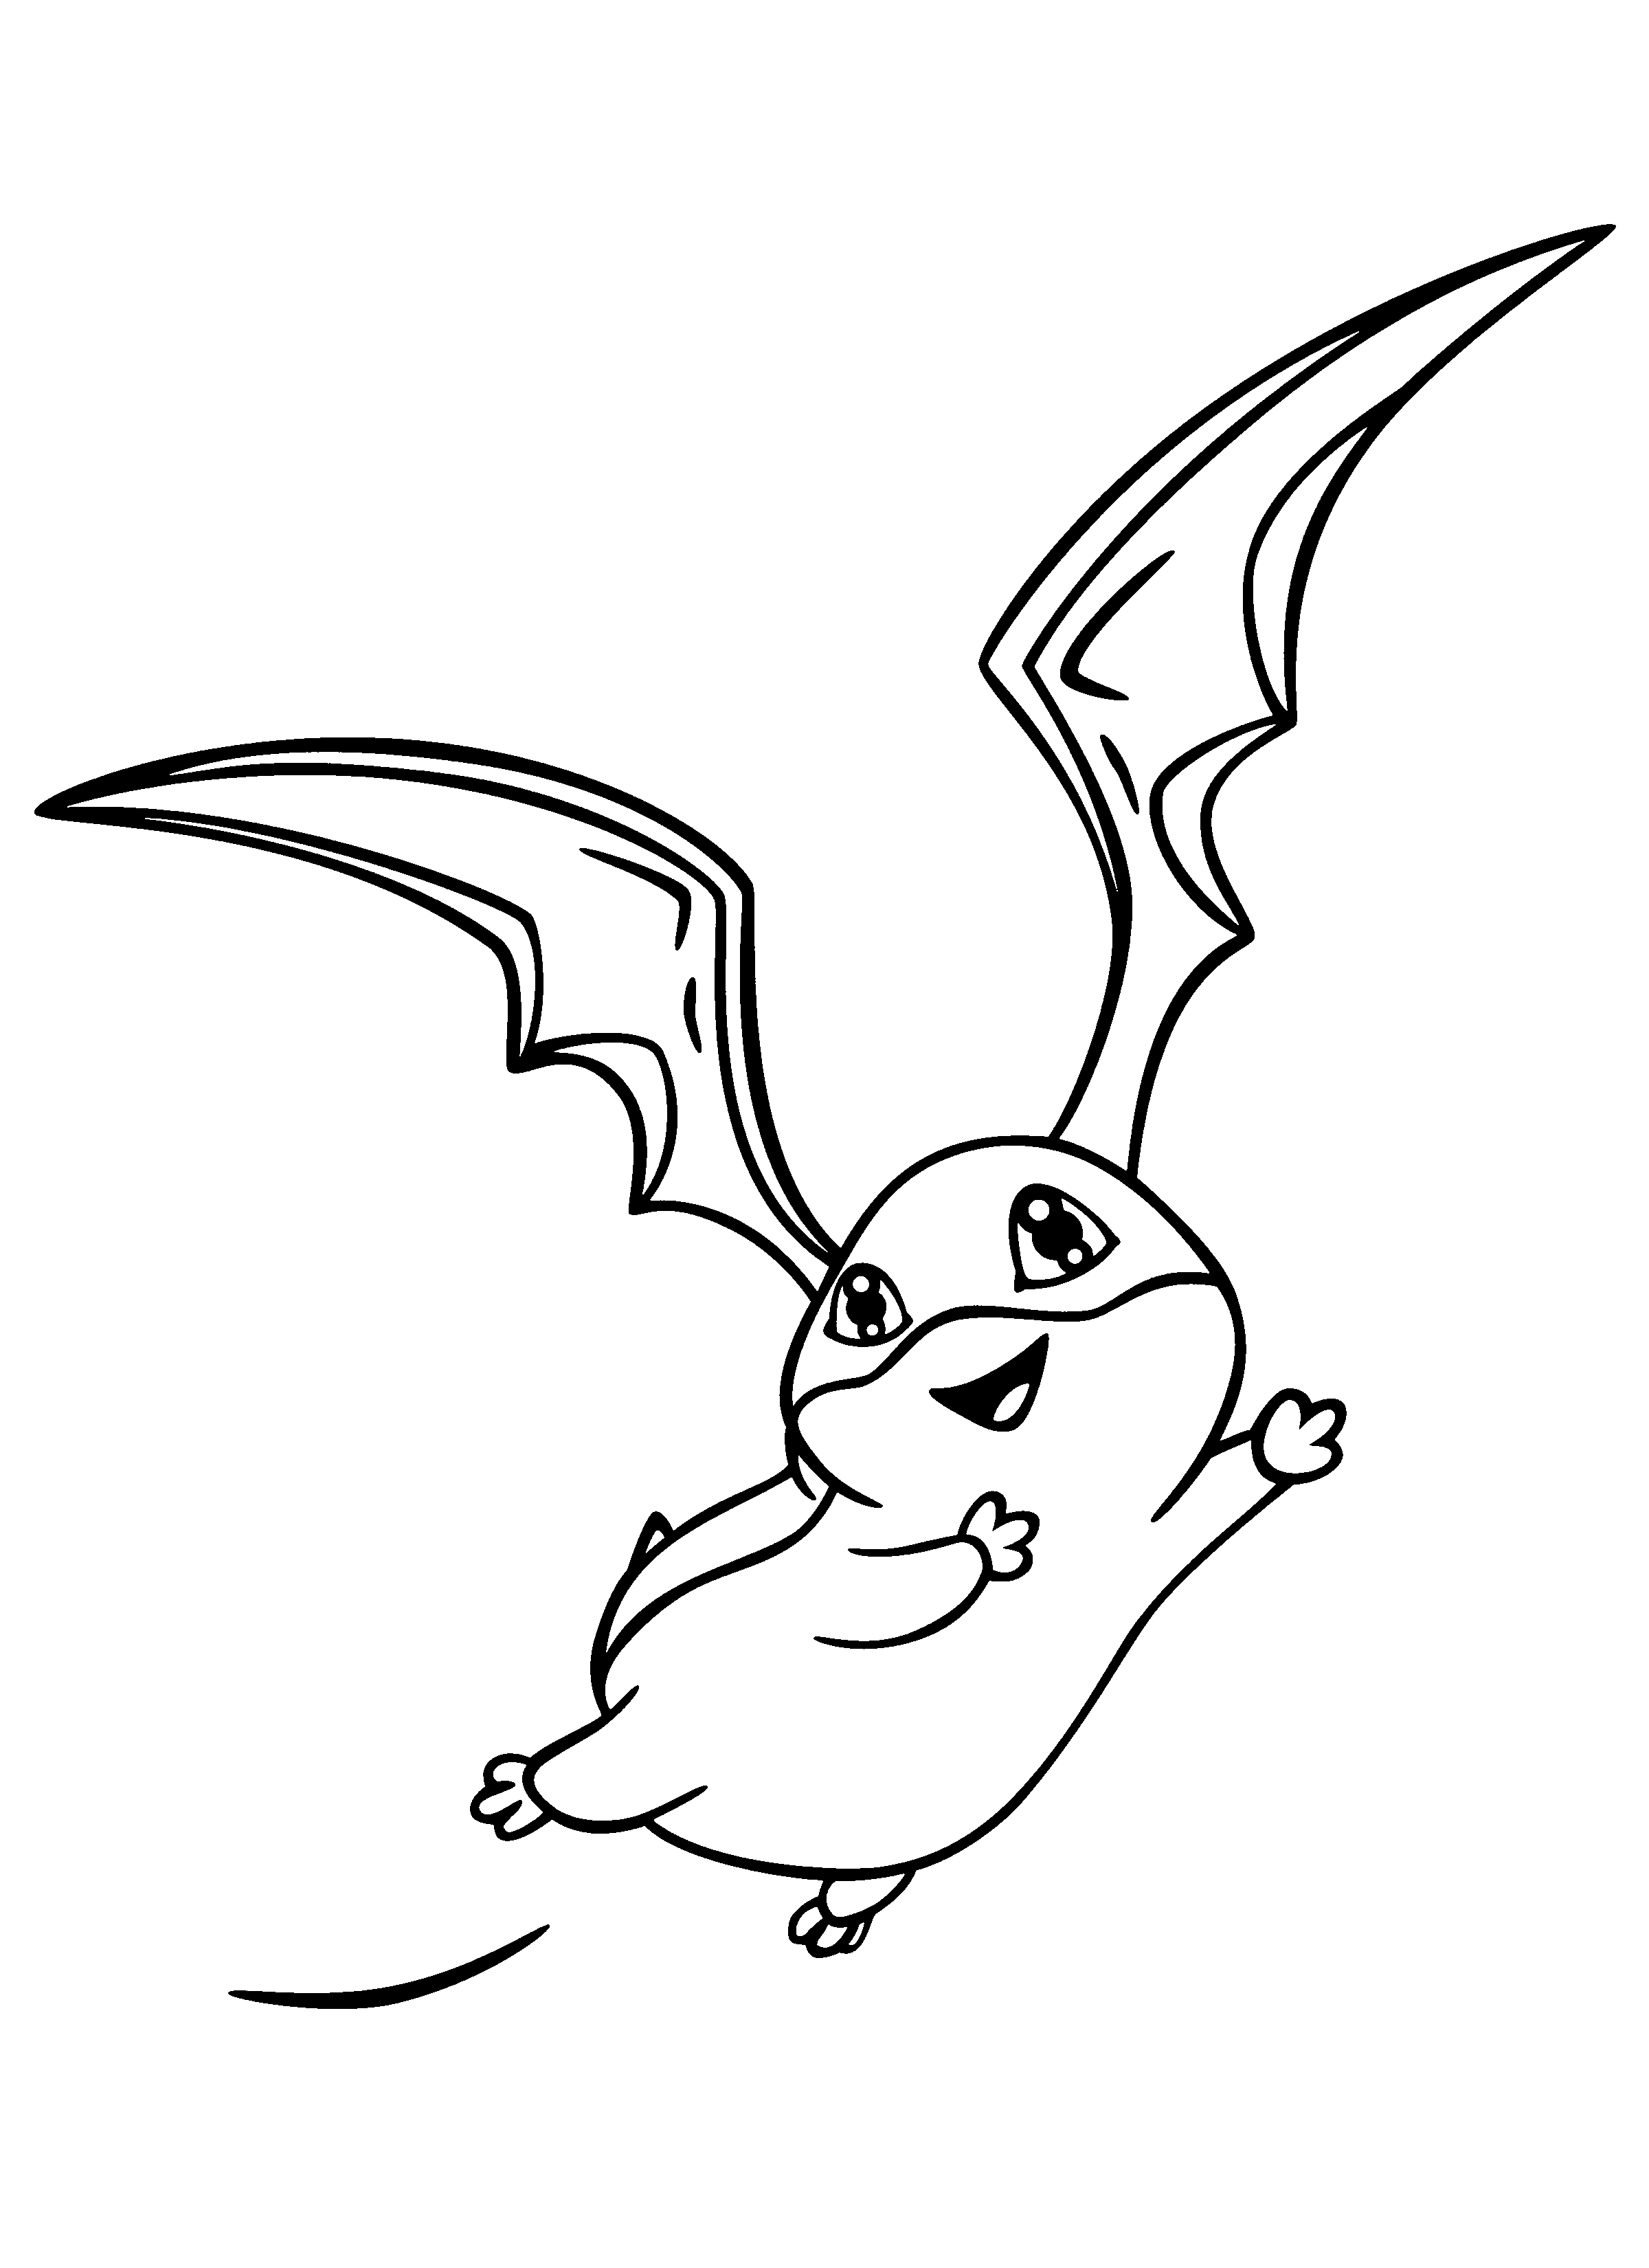 Free printable coloring pages sonic hedgehog - Free Digimon Coloring Page Digimon Coloring Pages 176 Printable Coloring Page